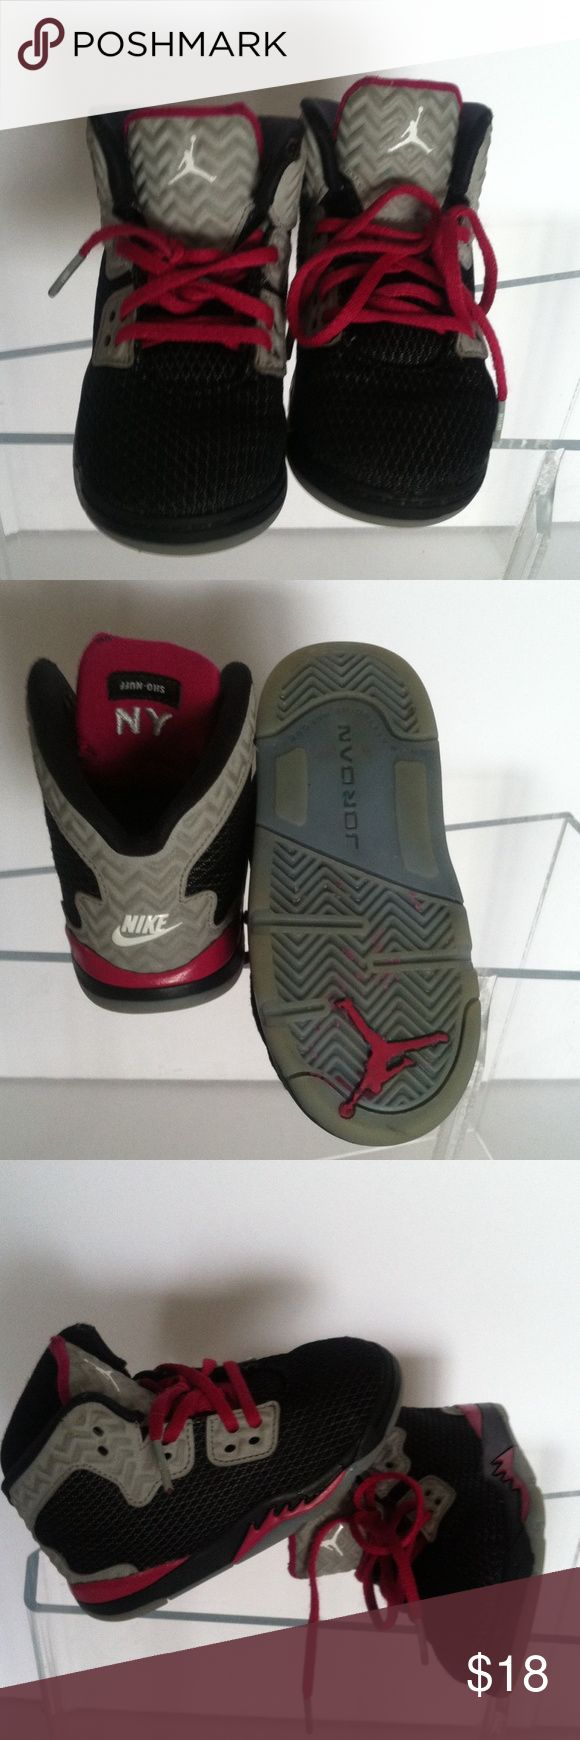 Pink black and grey Air Jordan's sz8c Gently worn child's sz 8 as pictured Air Jordan Shoes Baby & Walker